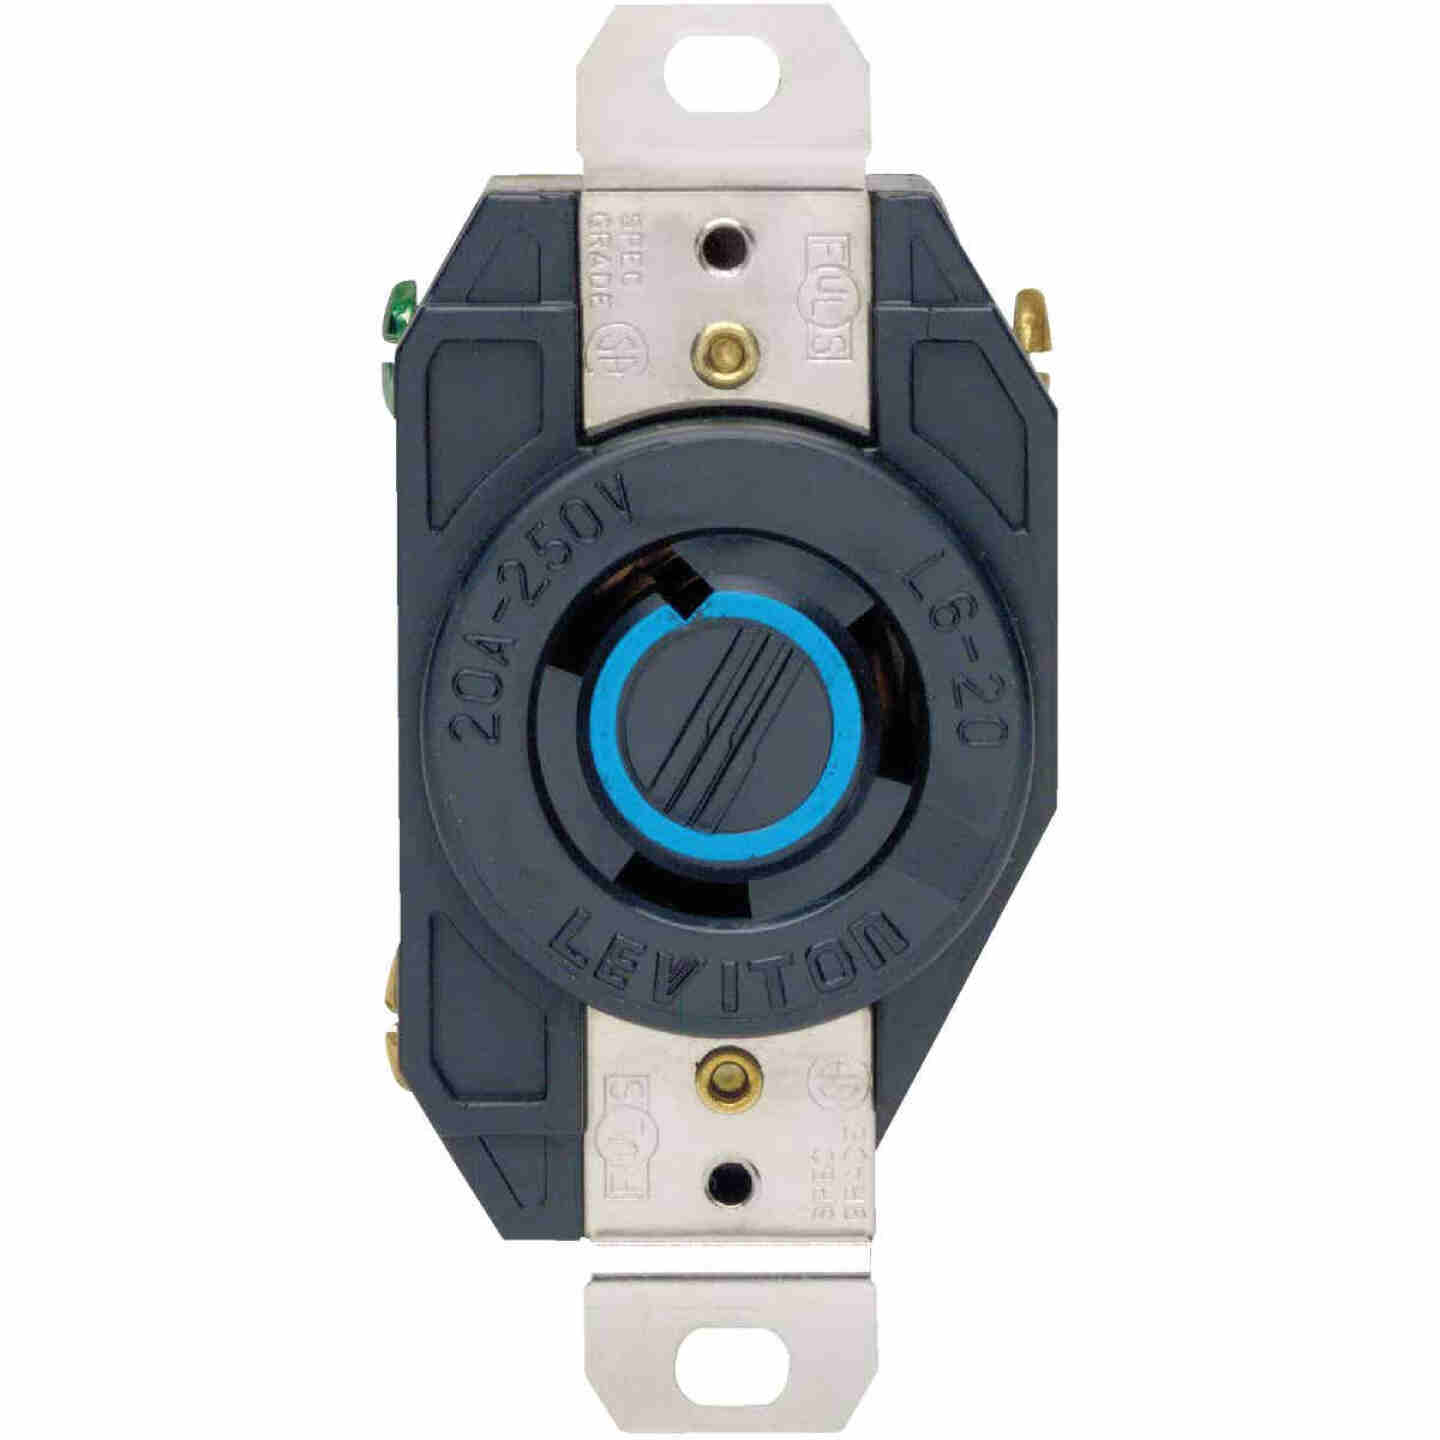 Leviton 20A 250V Black Industrial Grade L6-20R Locking Outlet Receptacle Image 2